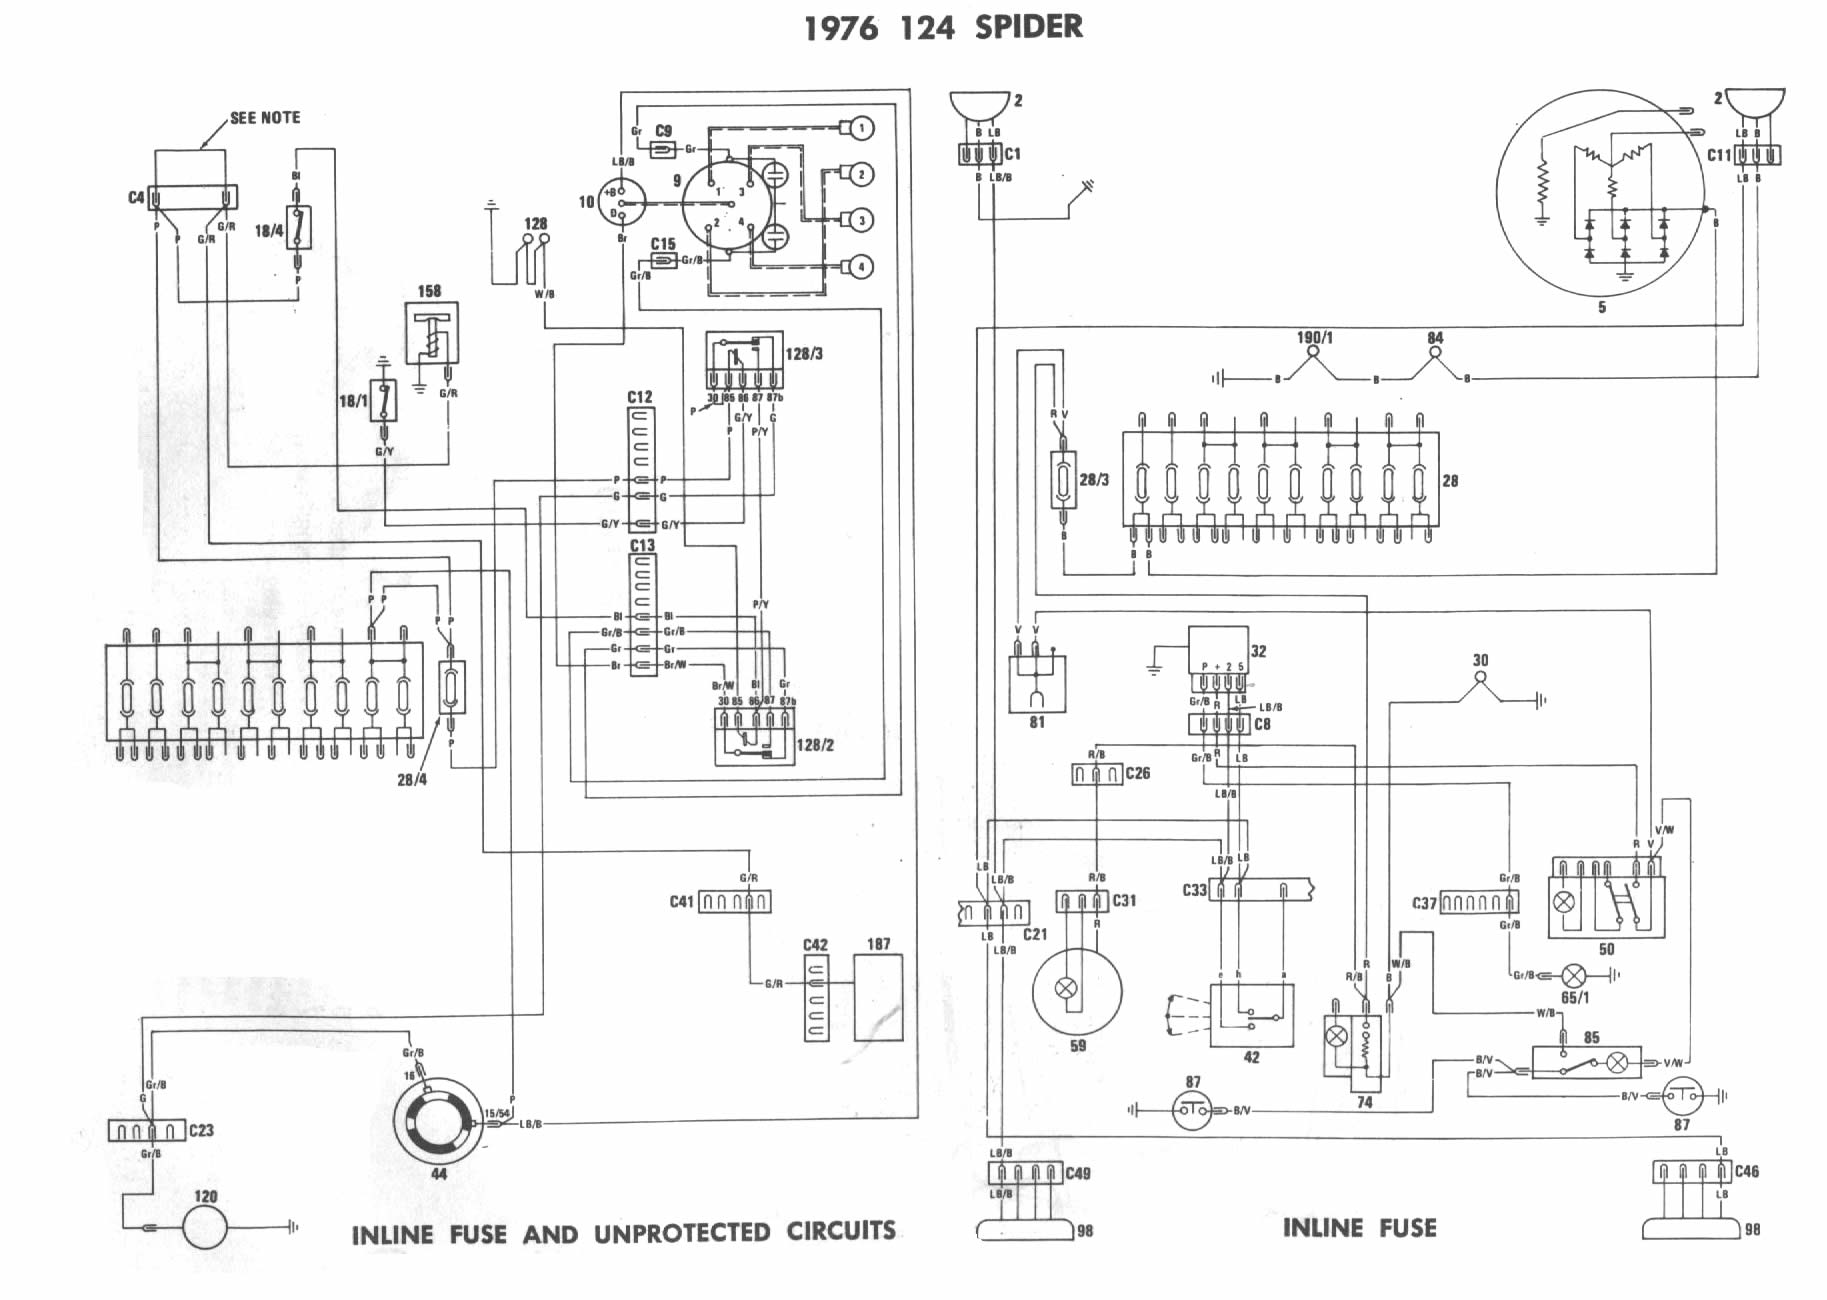 [DIAGRAM] 1972 Mgb Wiring Diagram Schematic FULL Version